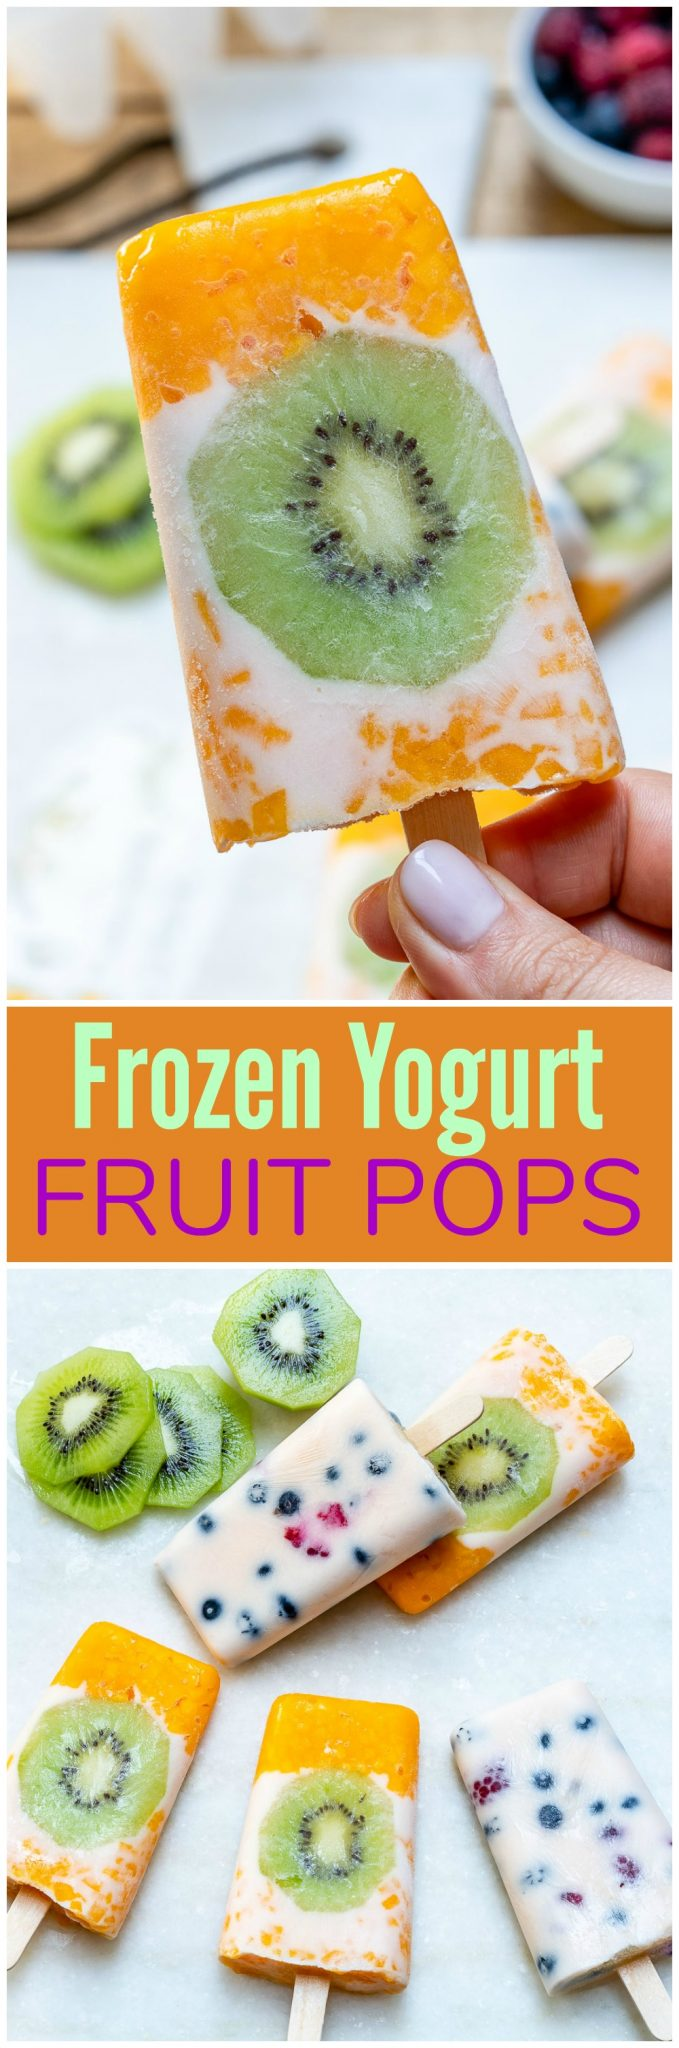 CleanFoodCrush Real Frozen Yogurt Fruit Popsicle